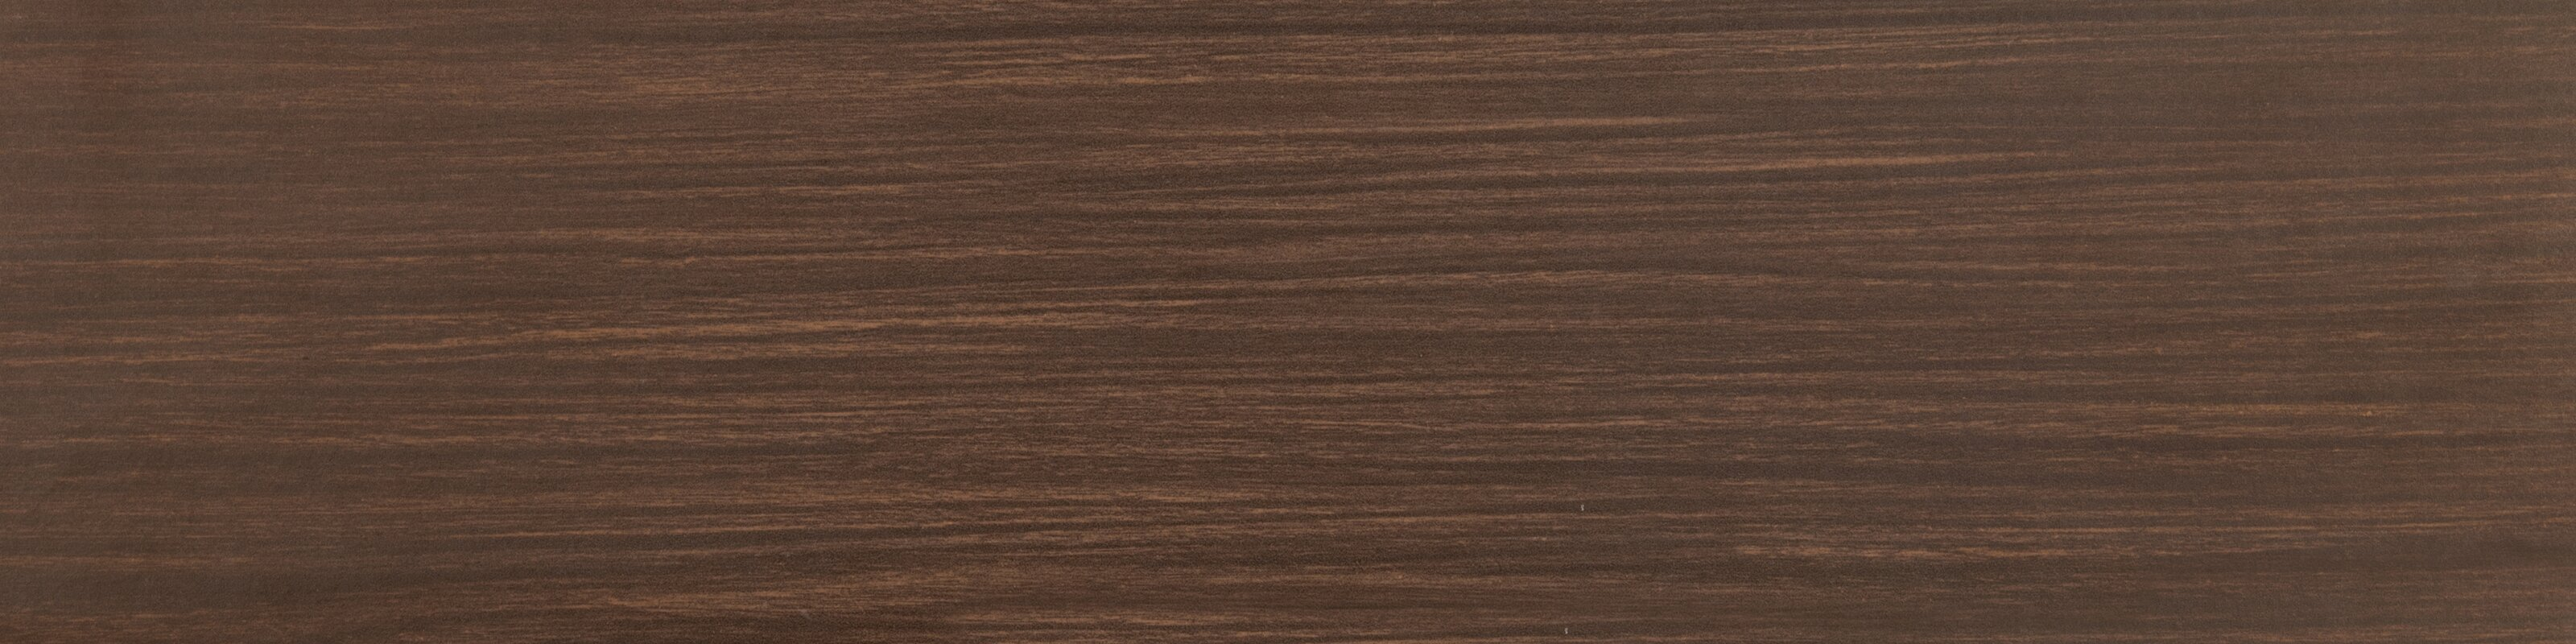 Sygma Chocolate 6 X 24 Ceramic Wood Look Tile